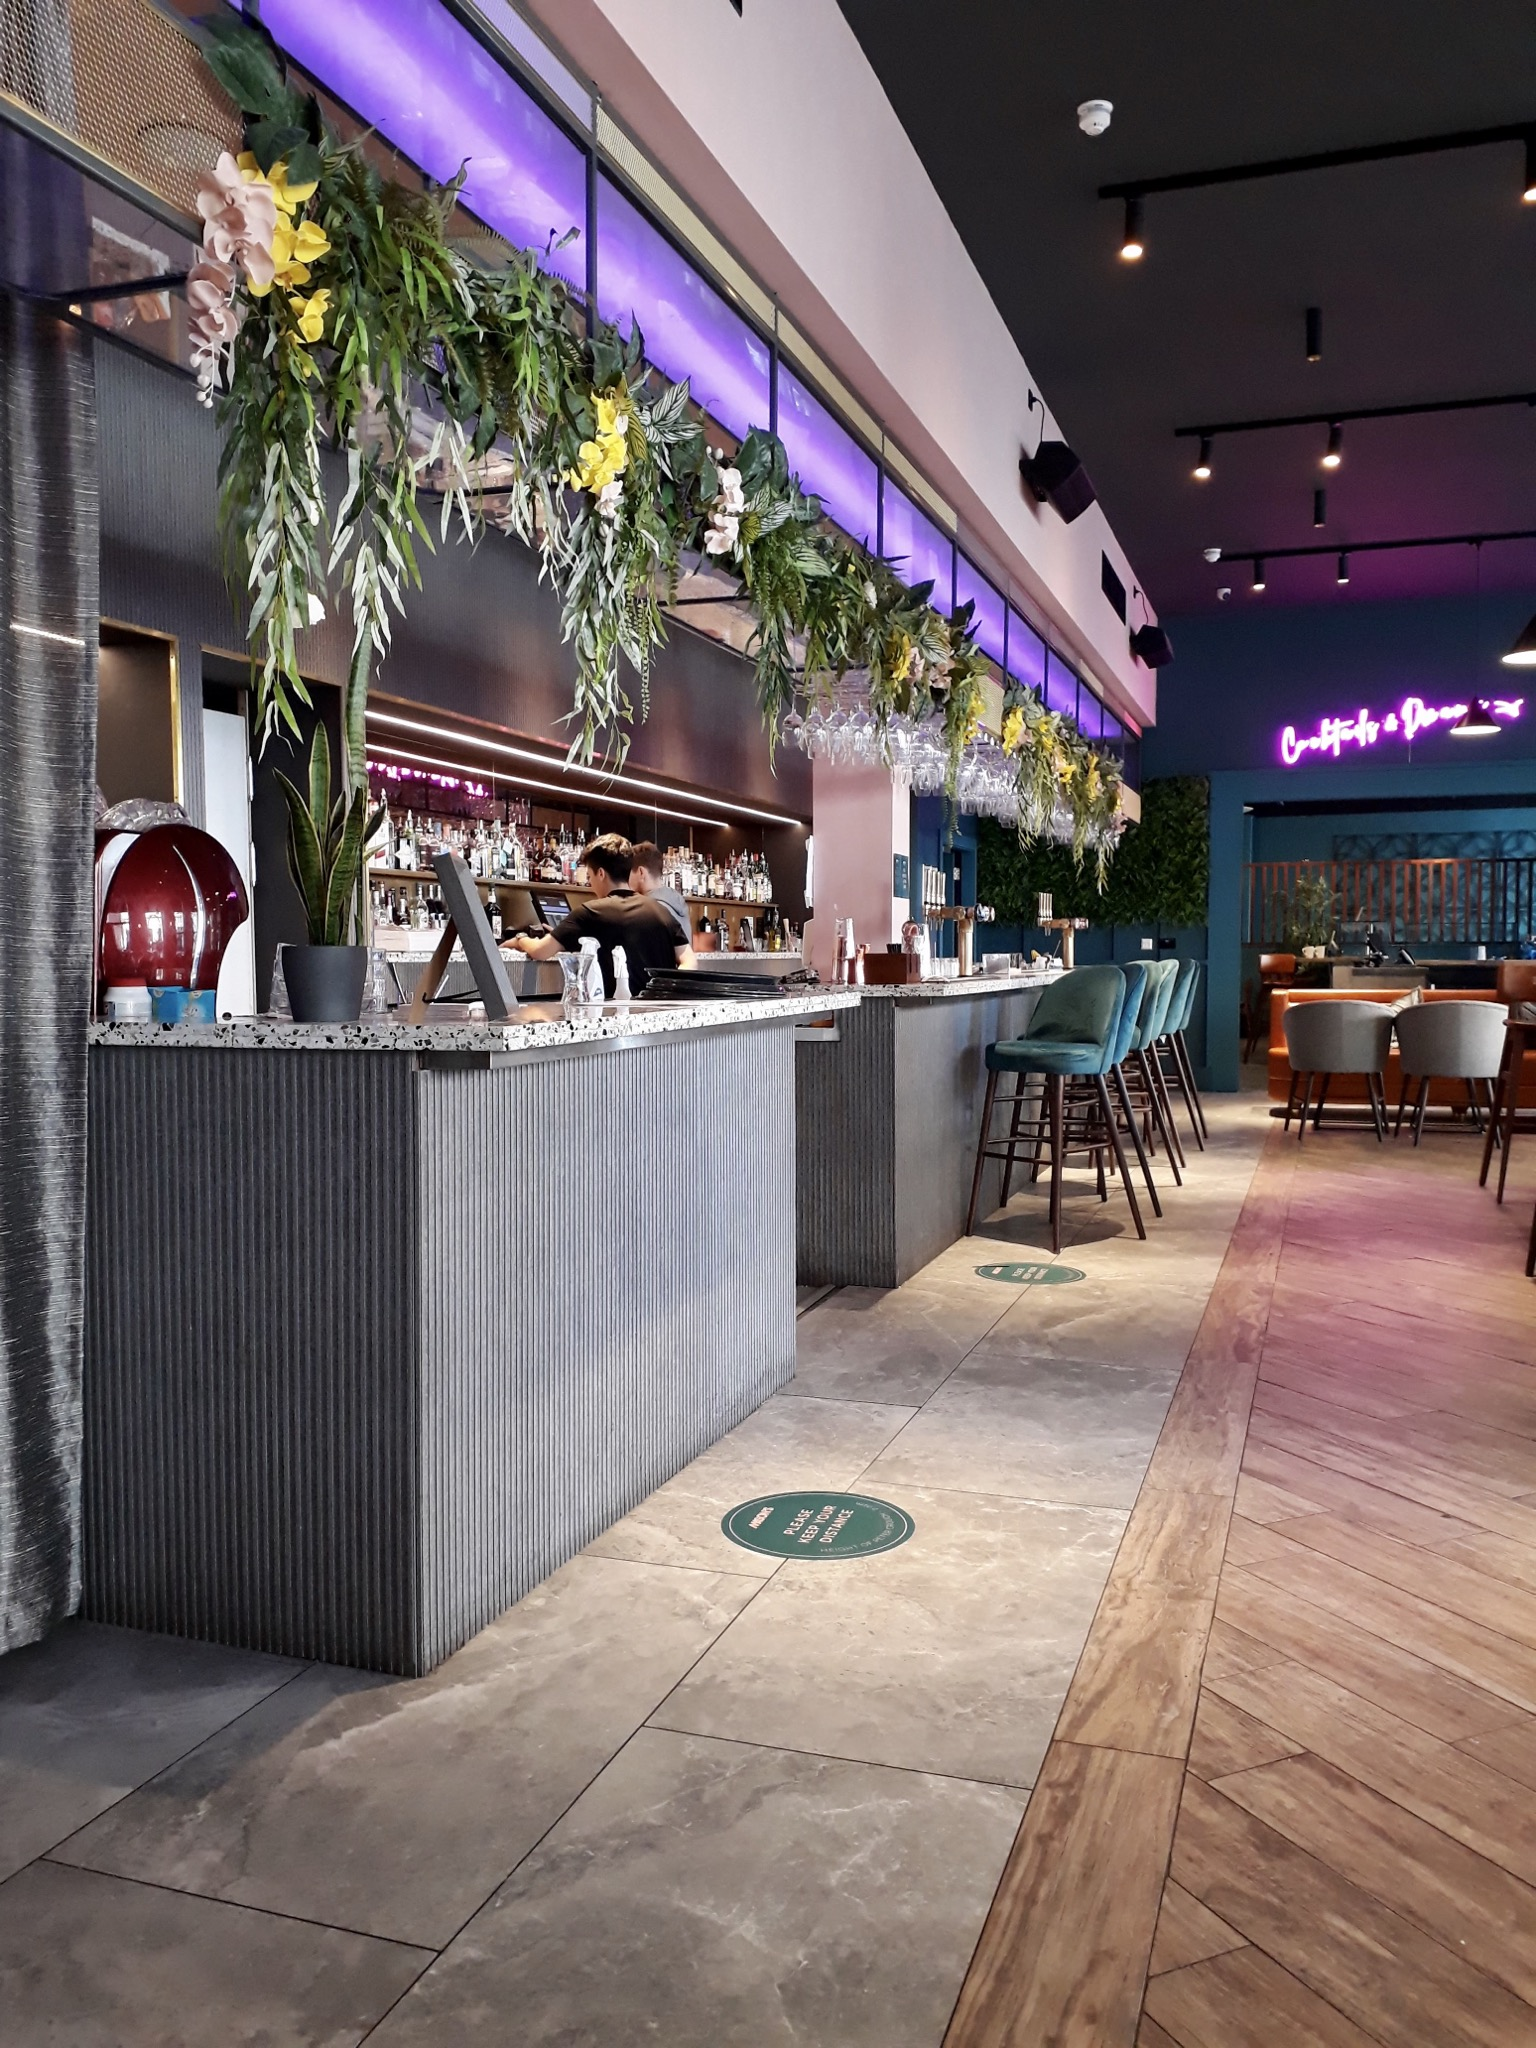 The inside of Mason's Liverpool restaurants you can see a grey bar area with flowers hanging above